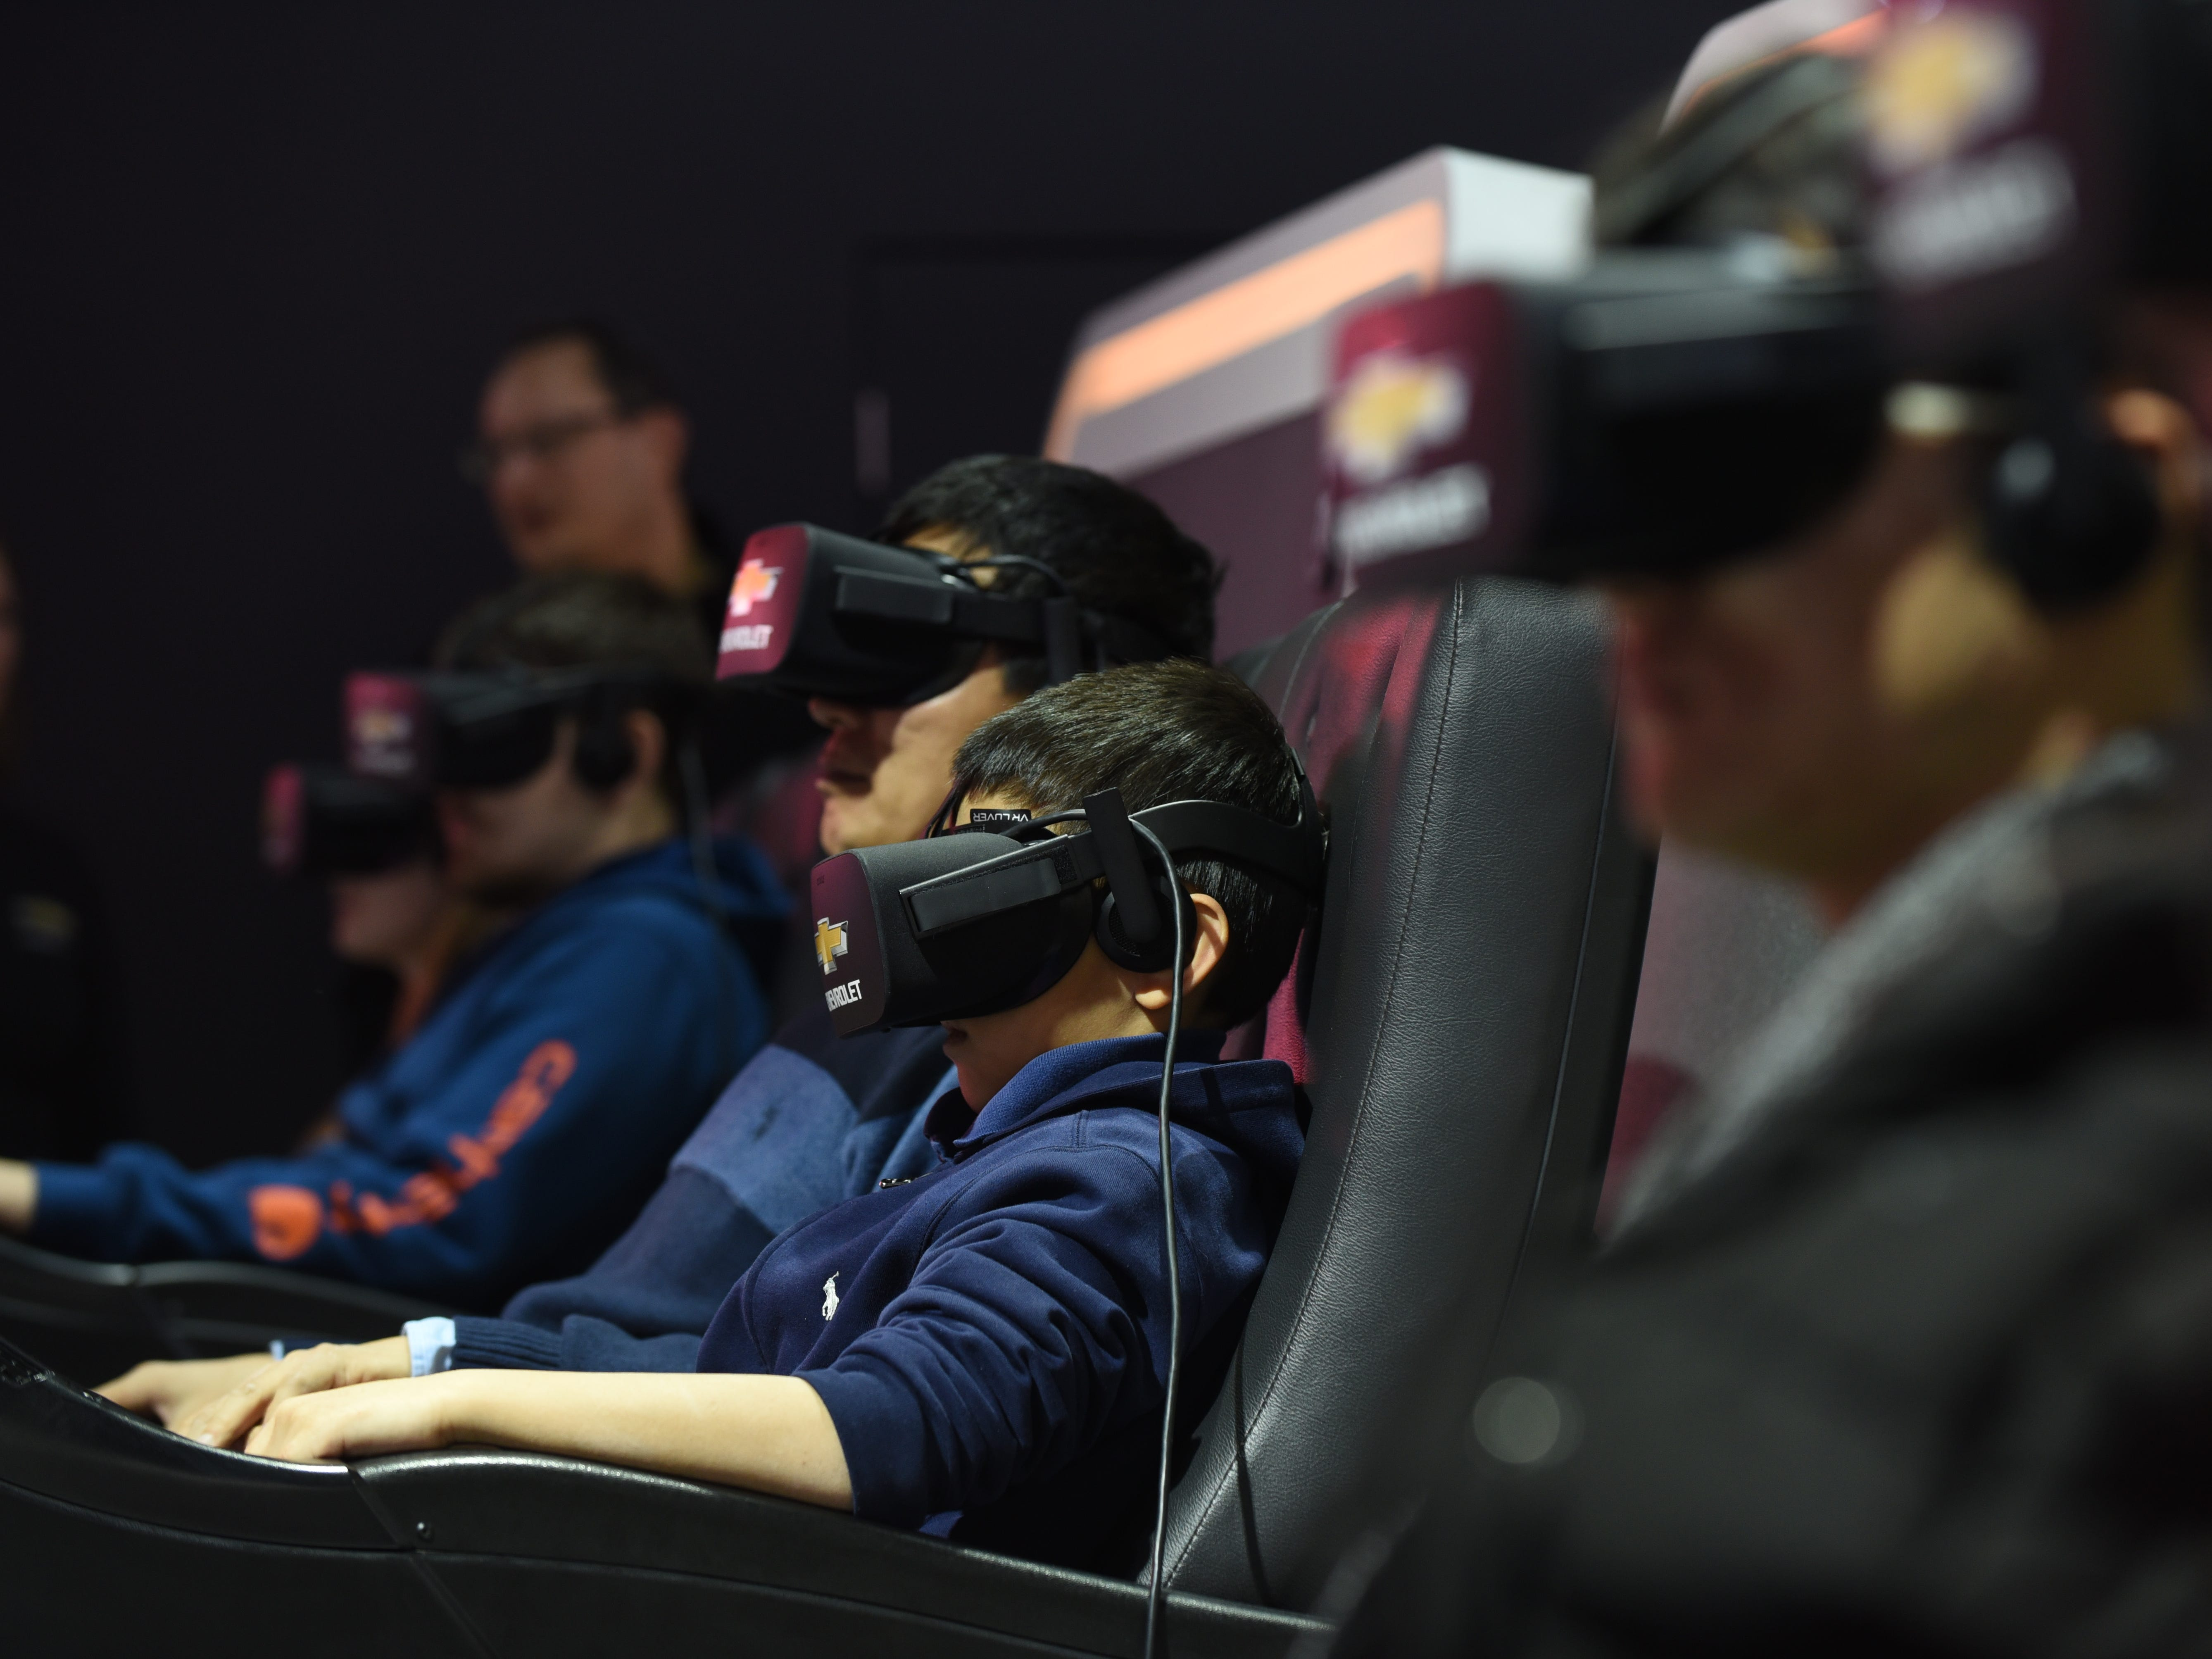 People wear VR headgear at General Motors Virtual Dynamics Lab 4D Experience at the 2019 North American International Auto Show on Saturday, January 19, 2019 .